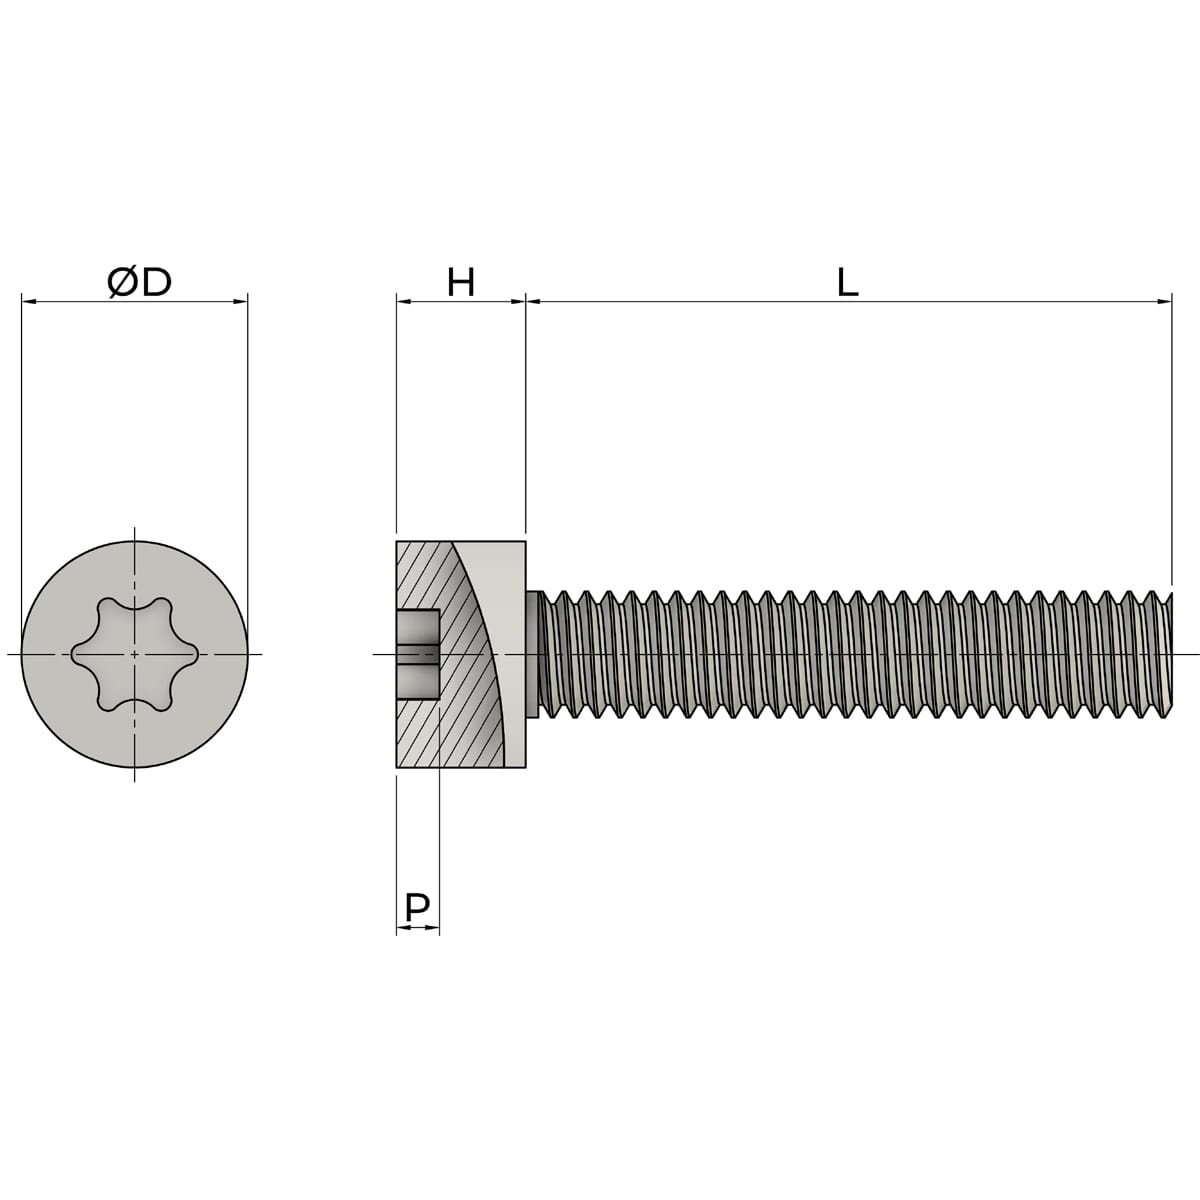 M5 x 10mm Torx Cap Head Screws (ISO 14579) - Marine Stainless Steel (A4) Drawing